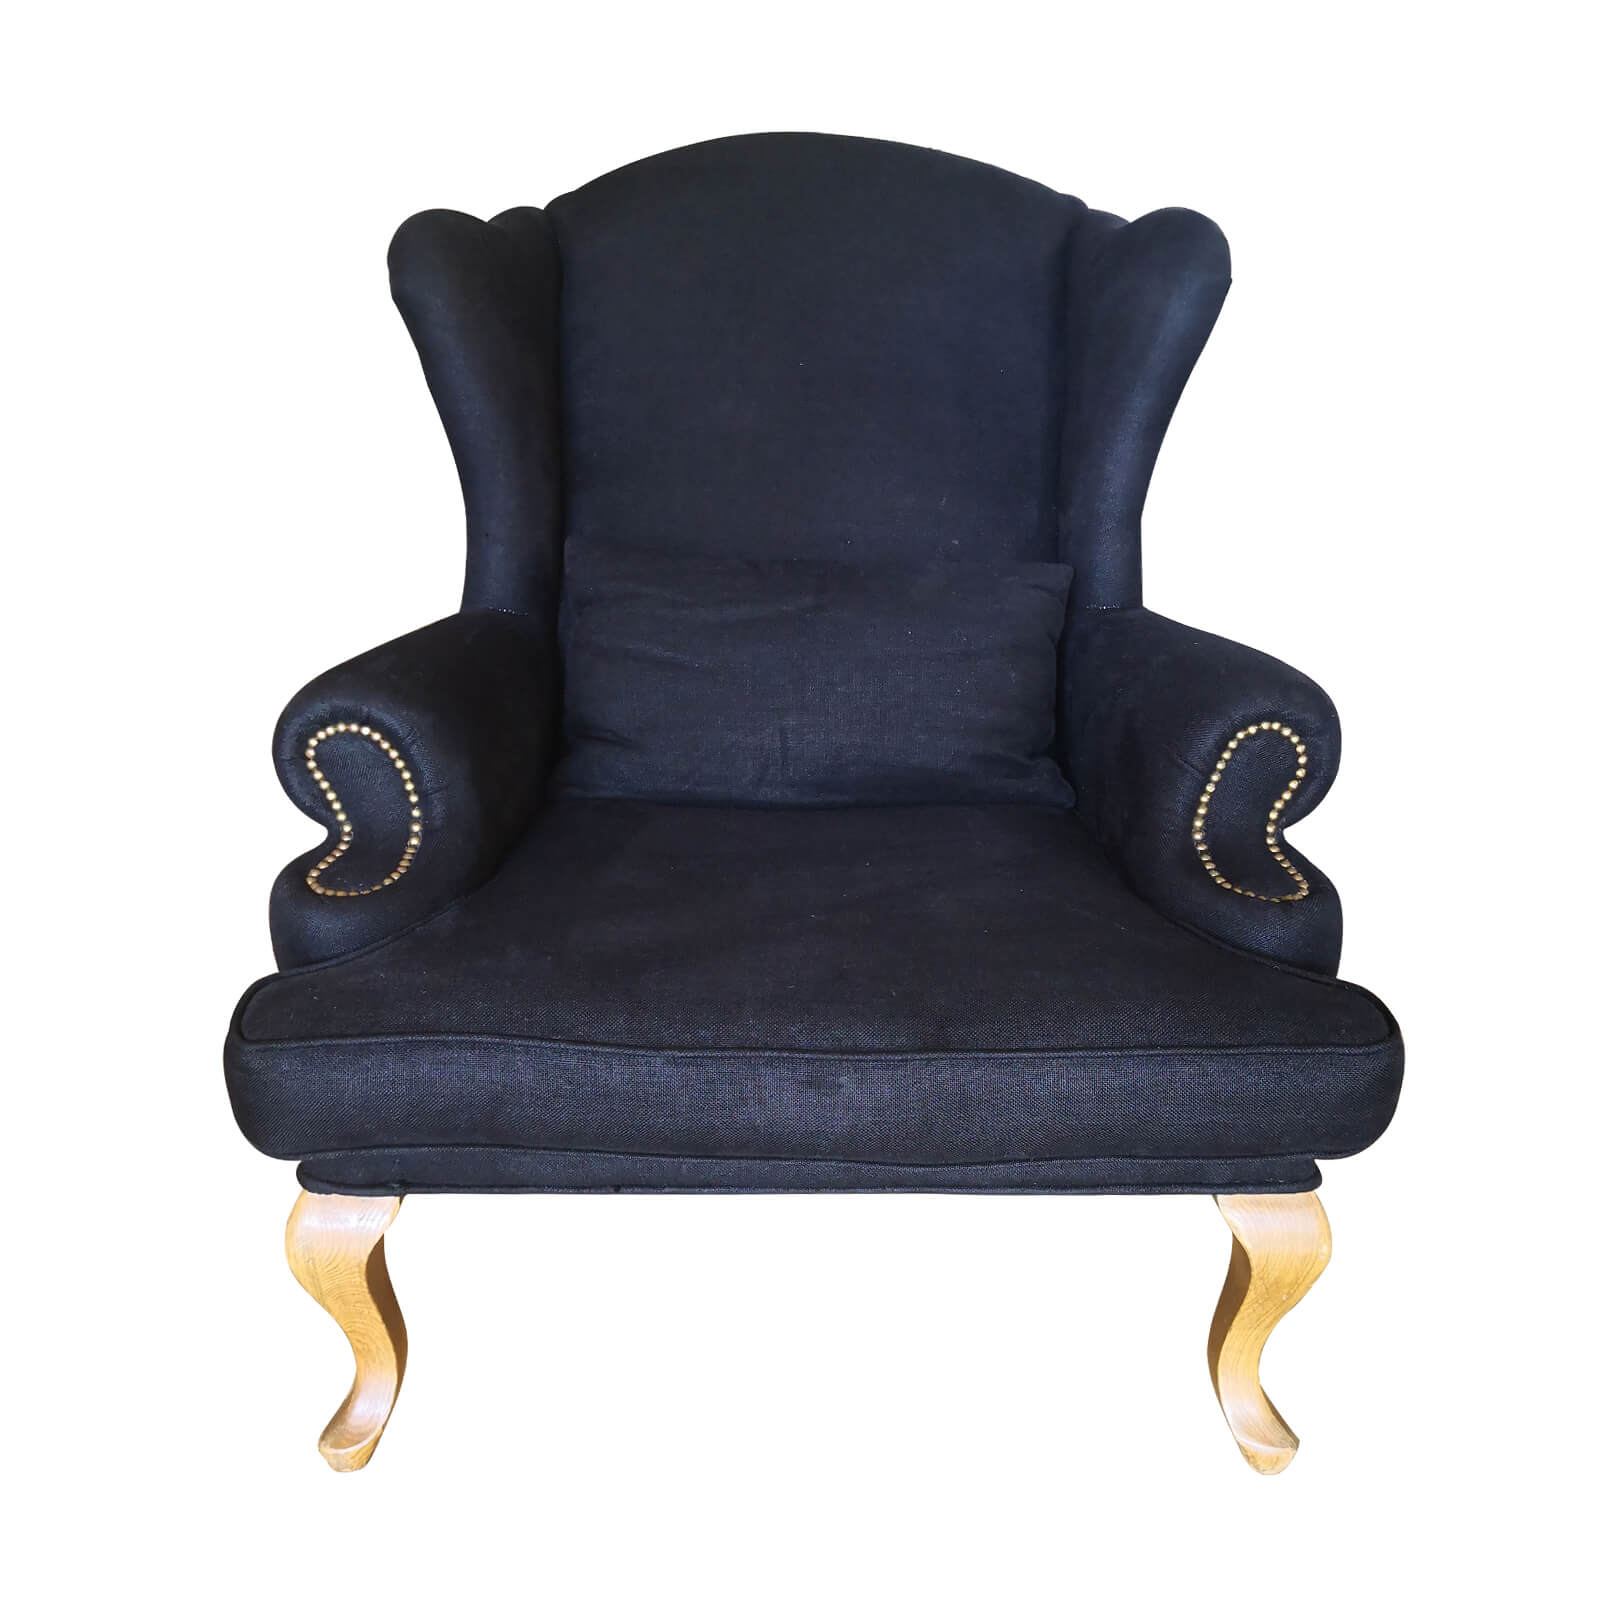 Two Design Lovers Wing back chair